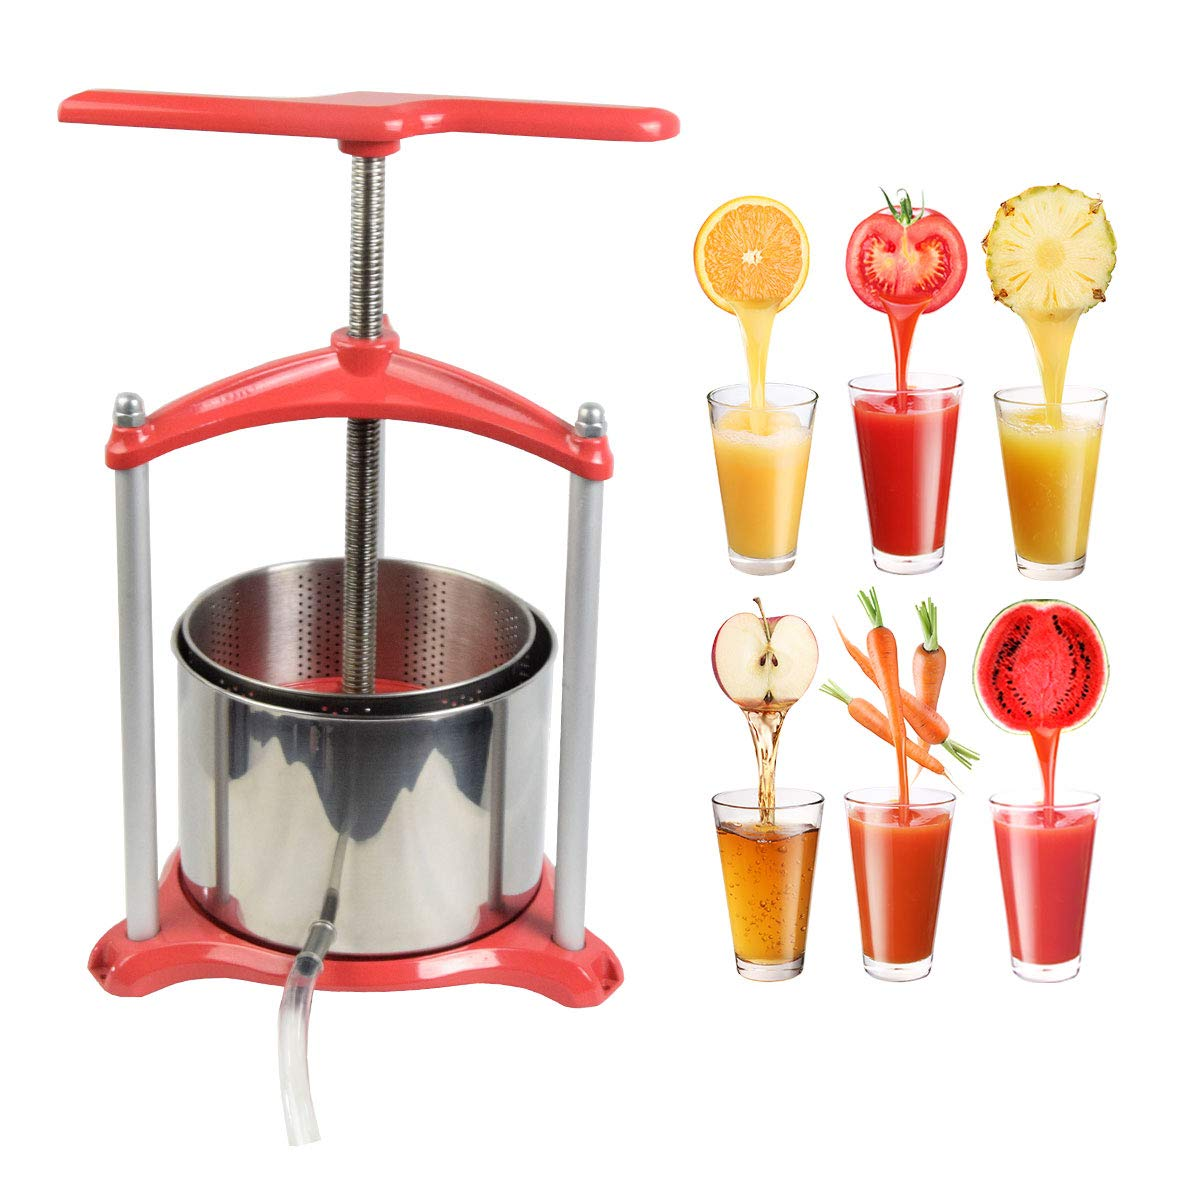 Soft Fruit Press,Grape Wine Press Stainless Steel,Vegetable Press,Wine Making Press,Juice Cider Press0.8 Gallon